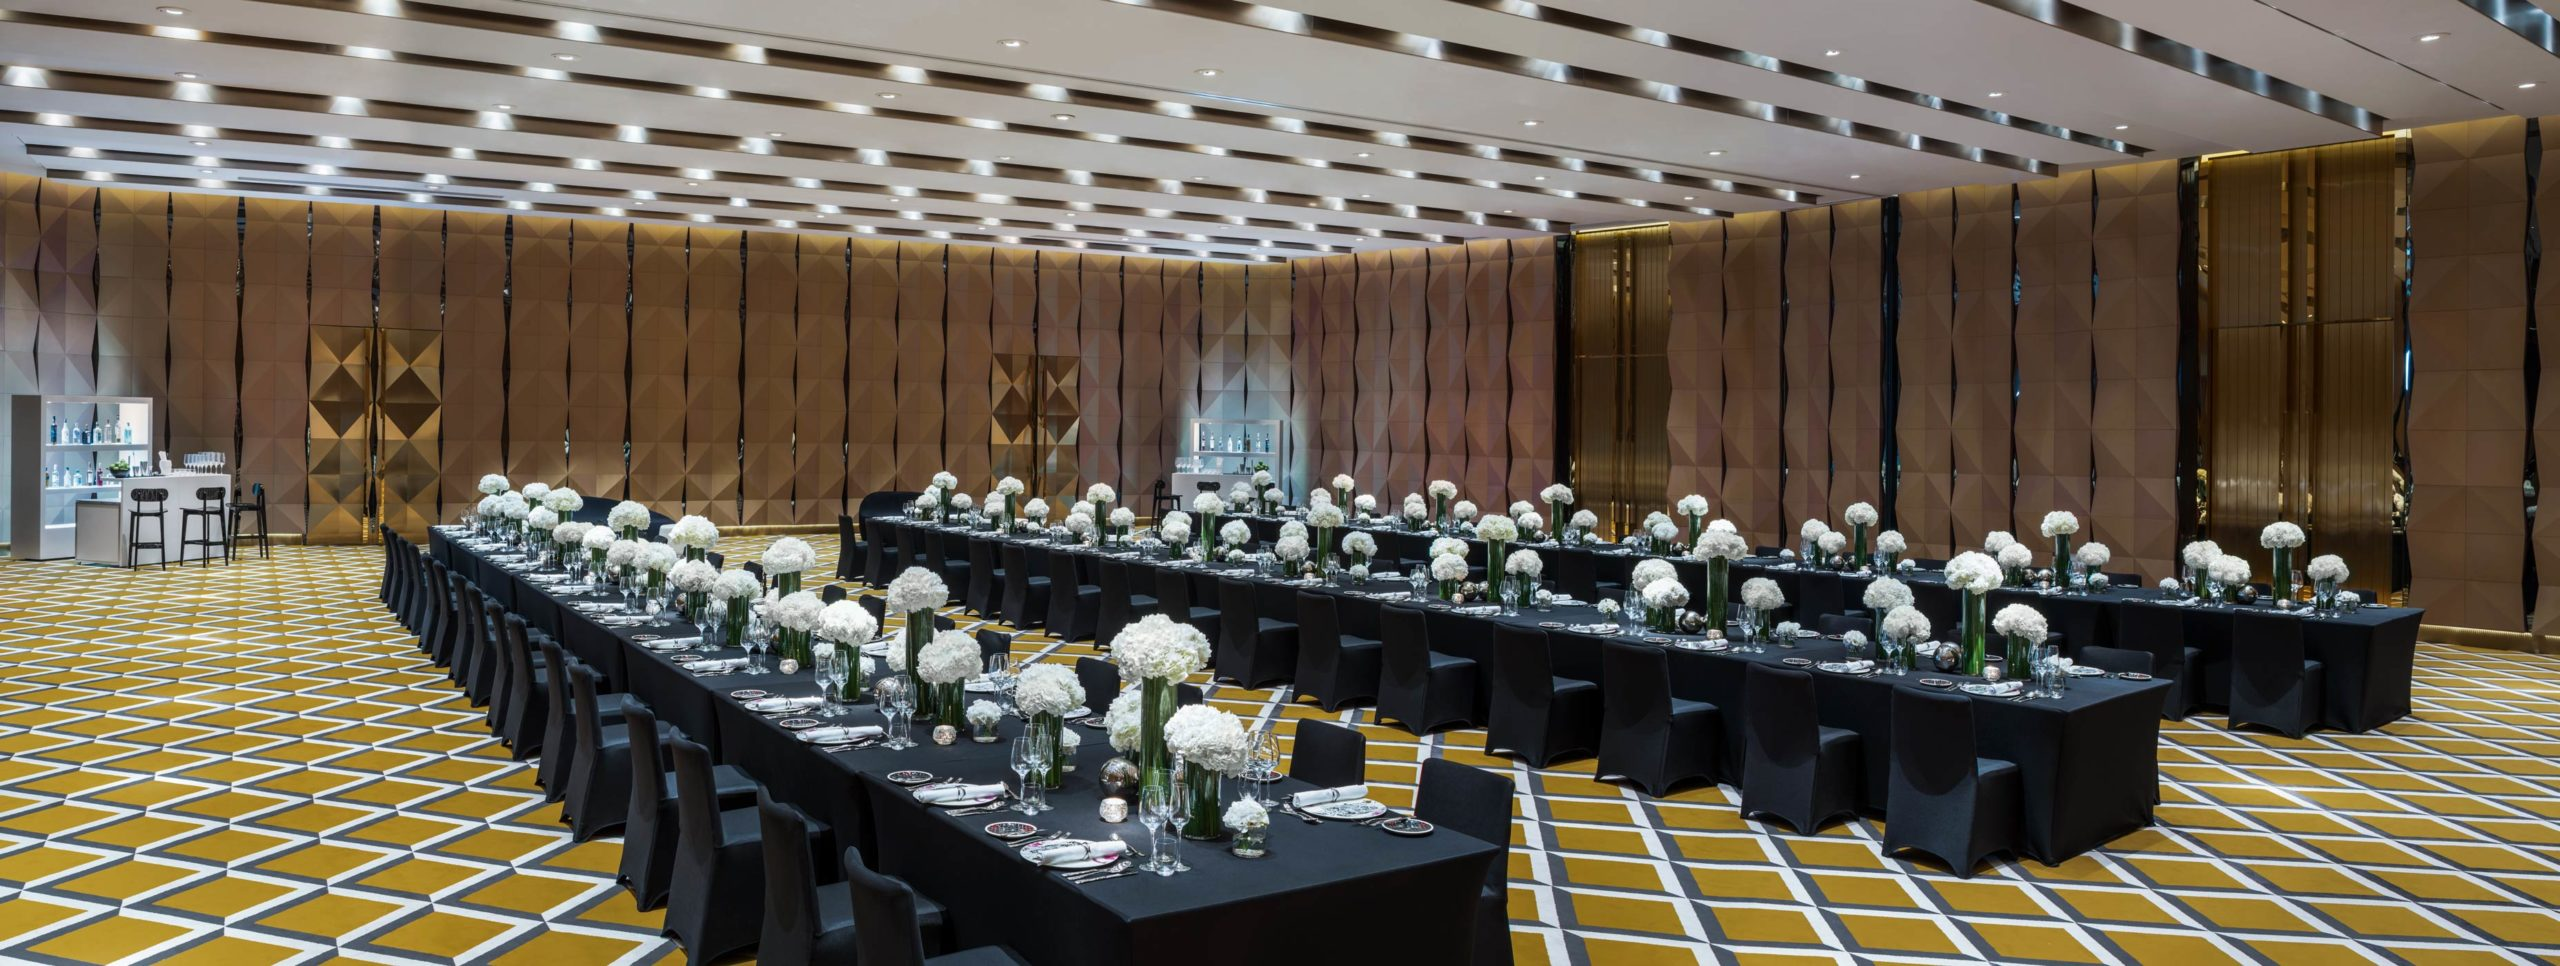 Mega-Meeting-LongTable_25-Aug